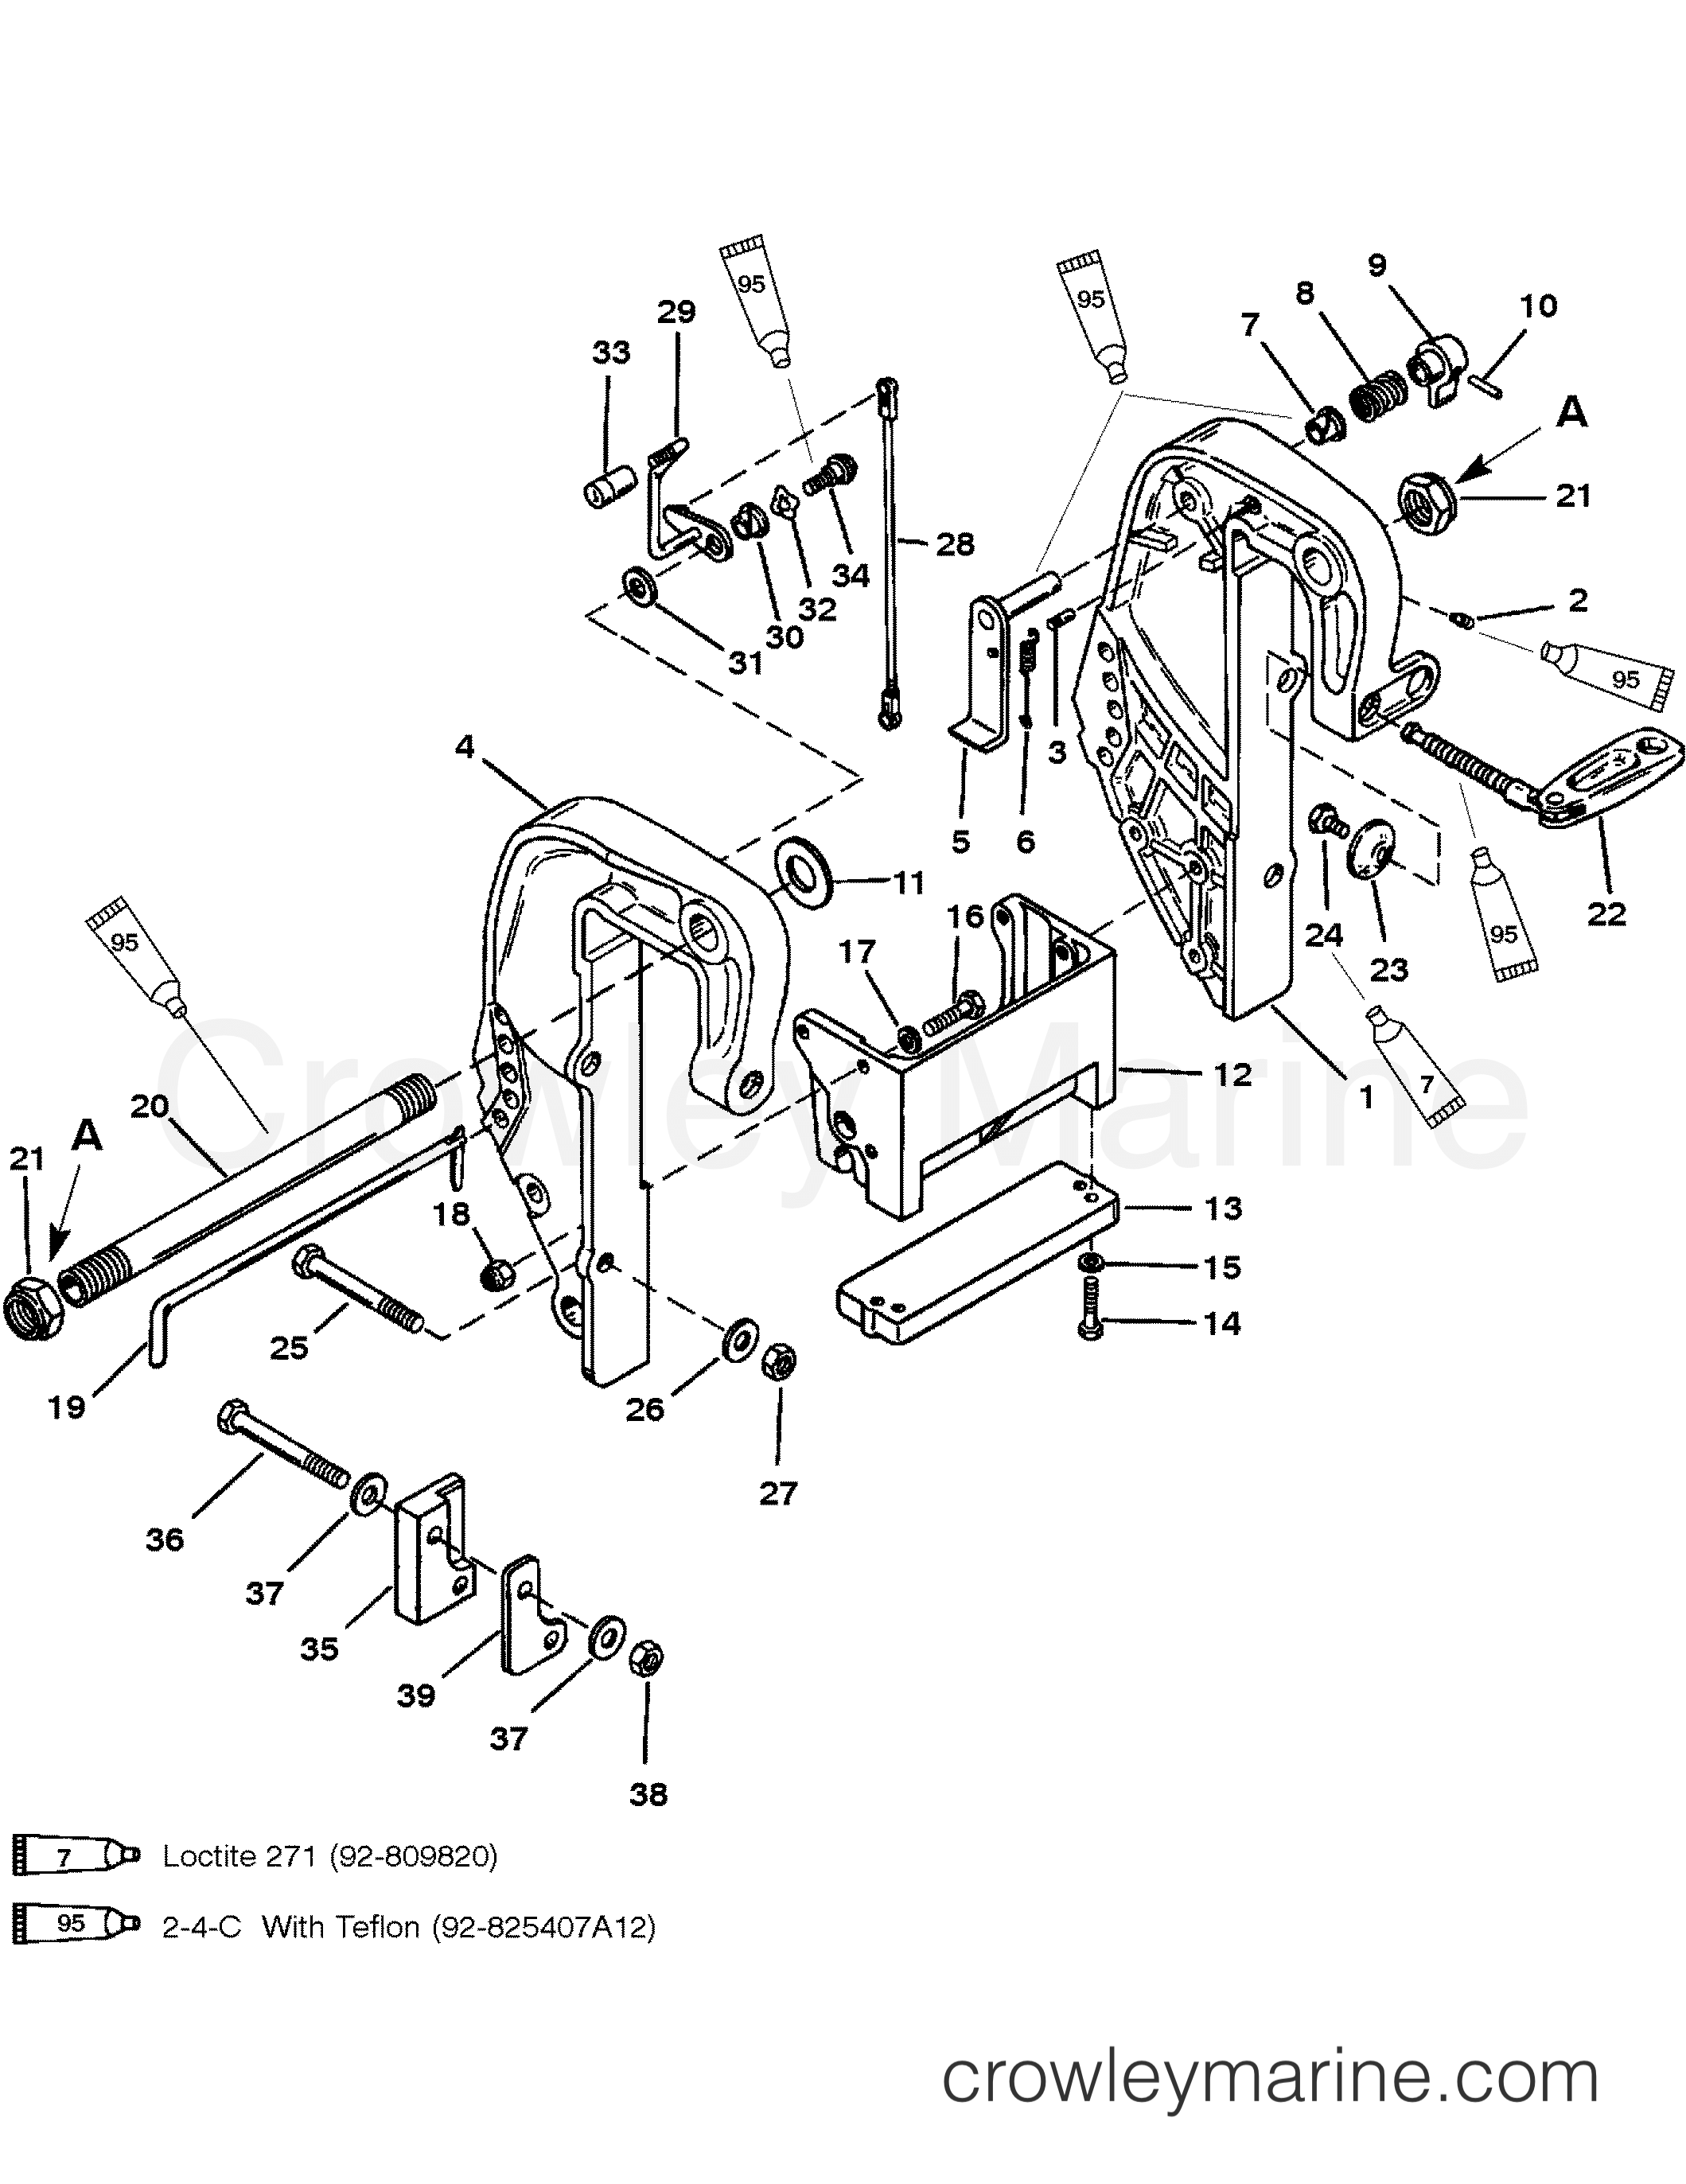 1996 Mariner Outboard 40 [ELHPTO] - 7040411ED CLAMP BRACKET (THUMB SCREW DESIGN) (S/N D181999 & BELOW) section